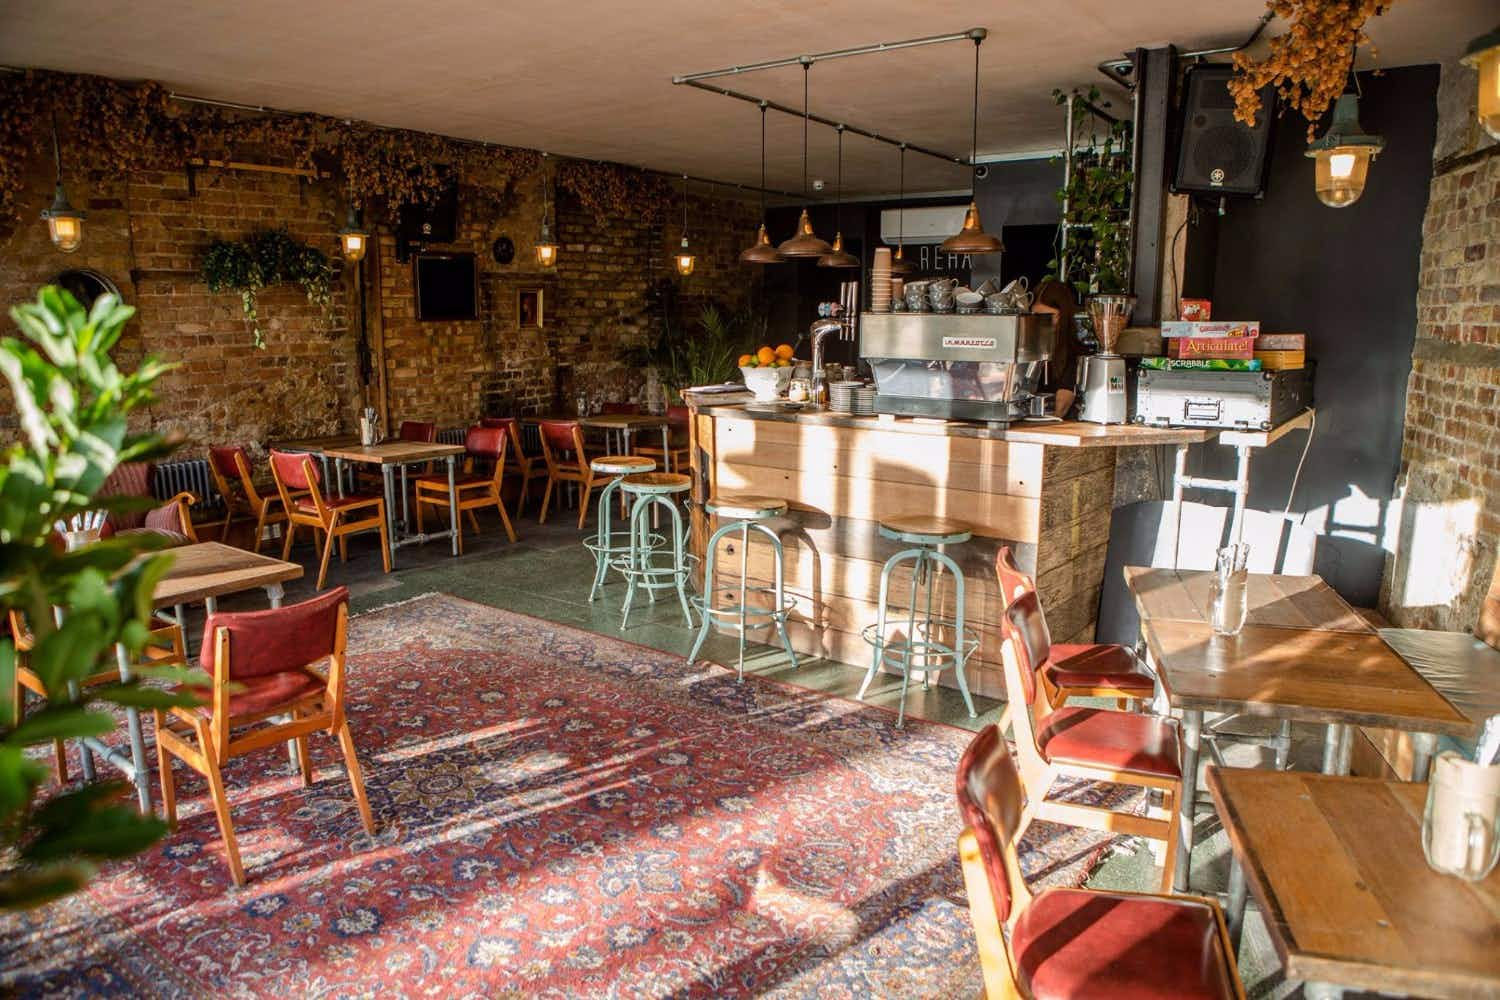 Cure that hangover at the newly opened medicinal vegan bar and café  in London